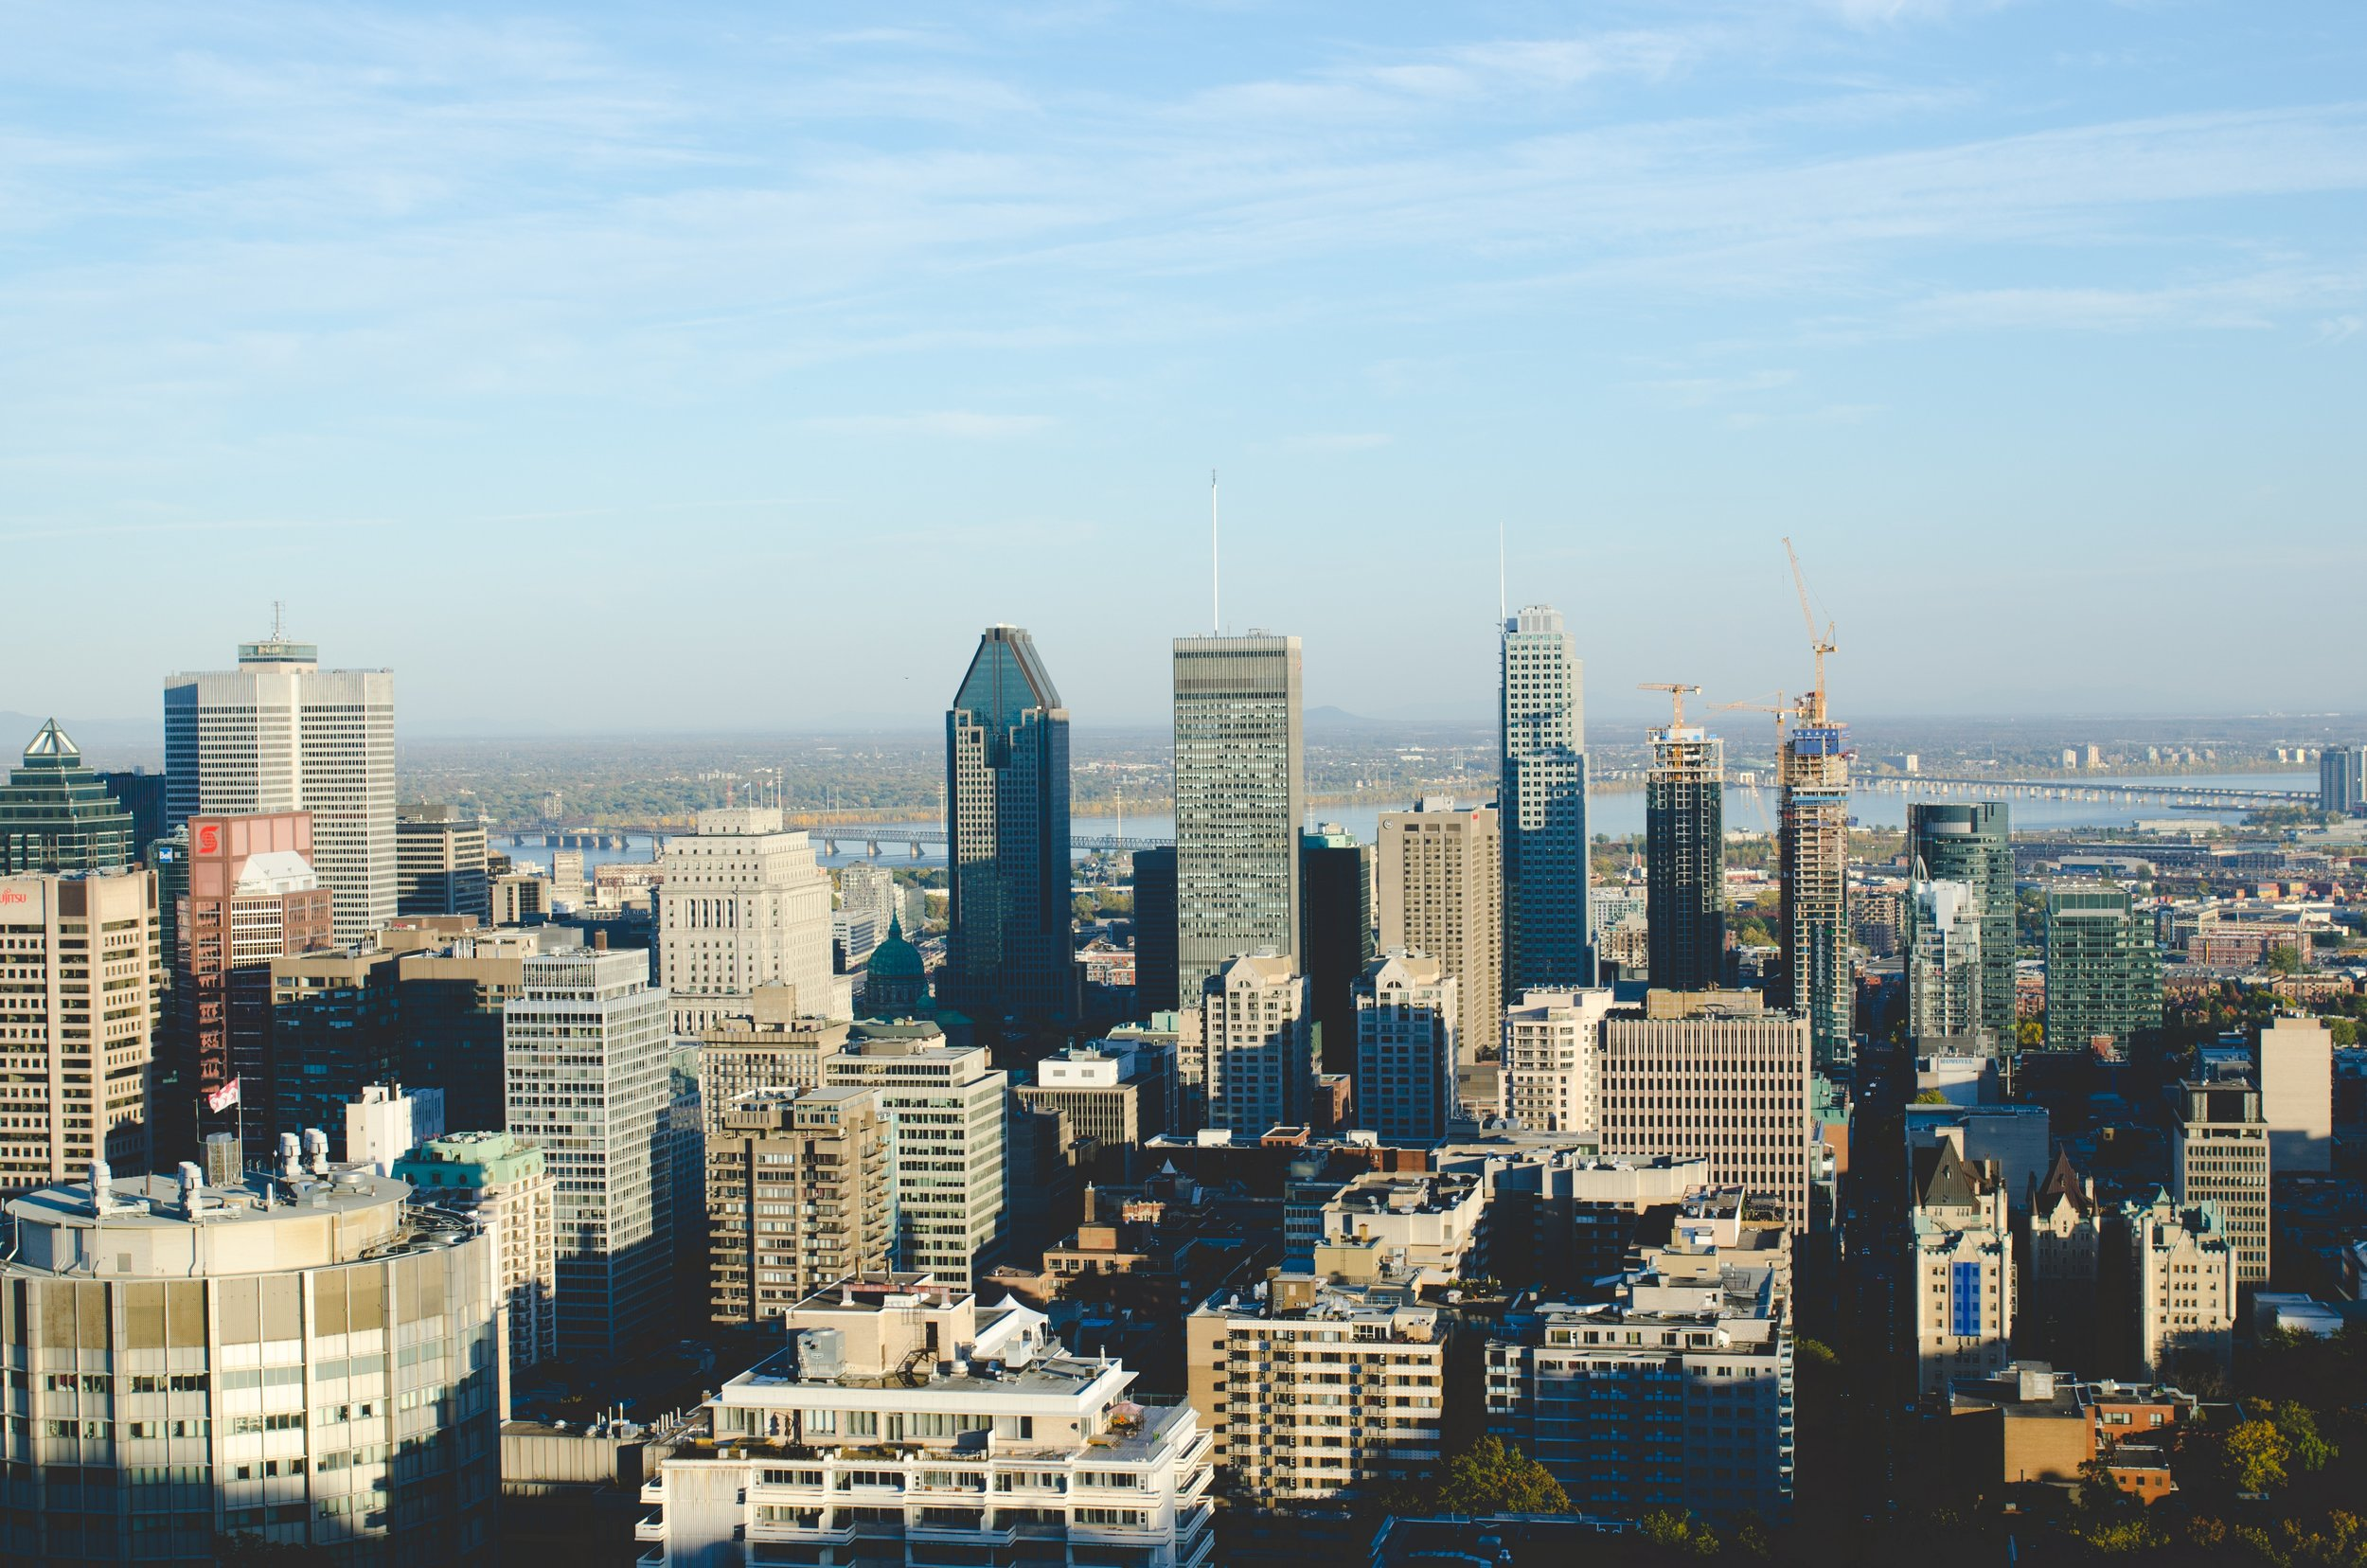 Photo of Montreal skyline by  andrew welch  on  Unsplash